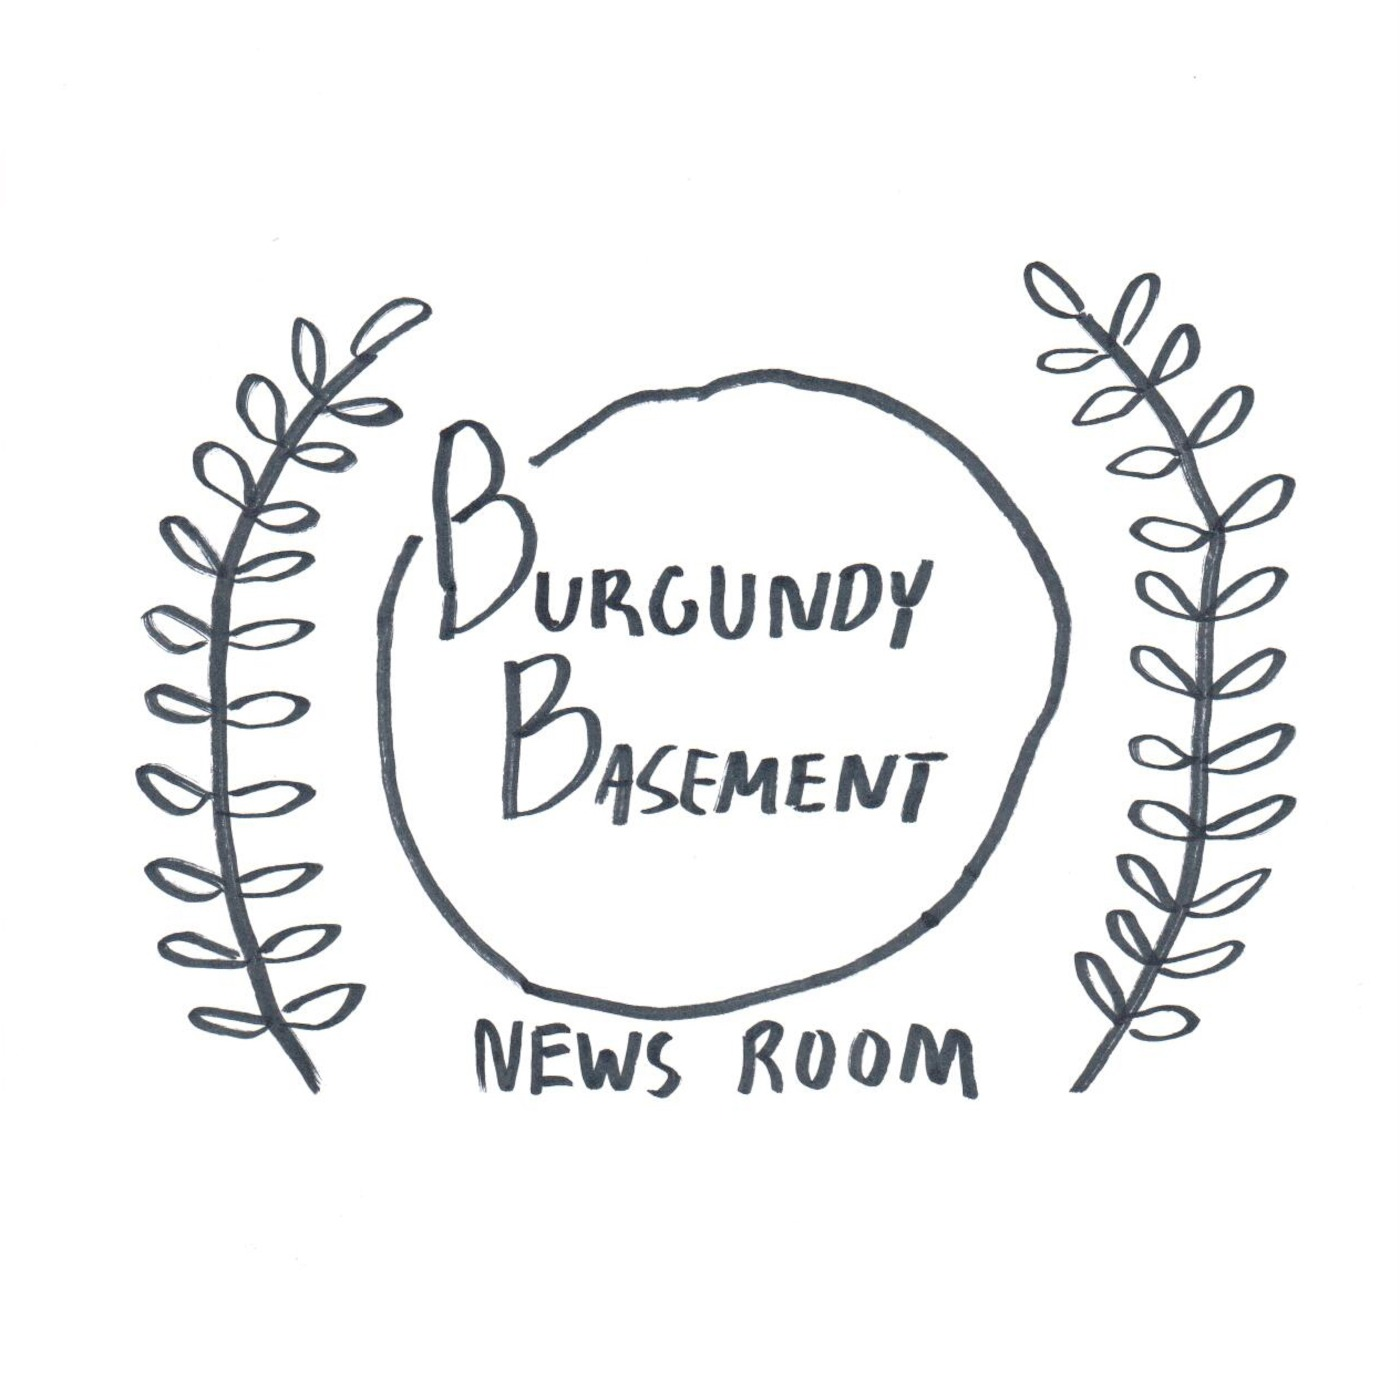 Burgundy Basement: News Room